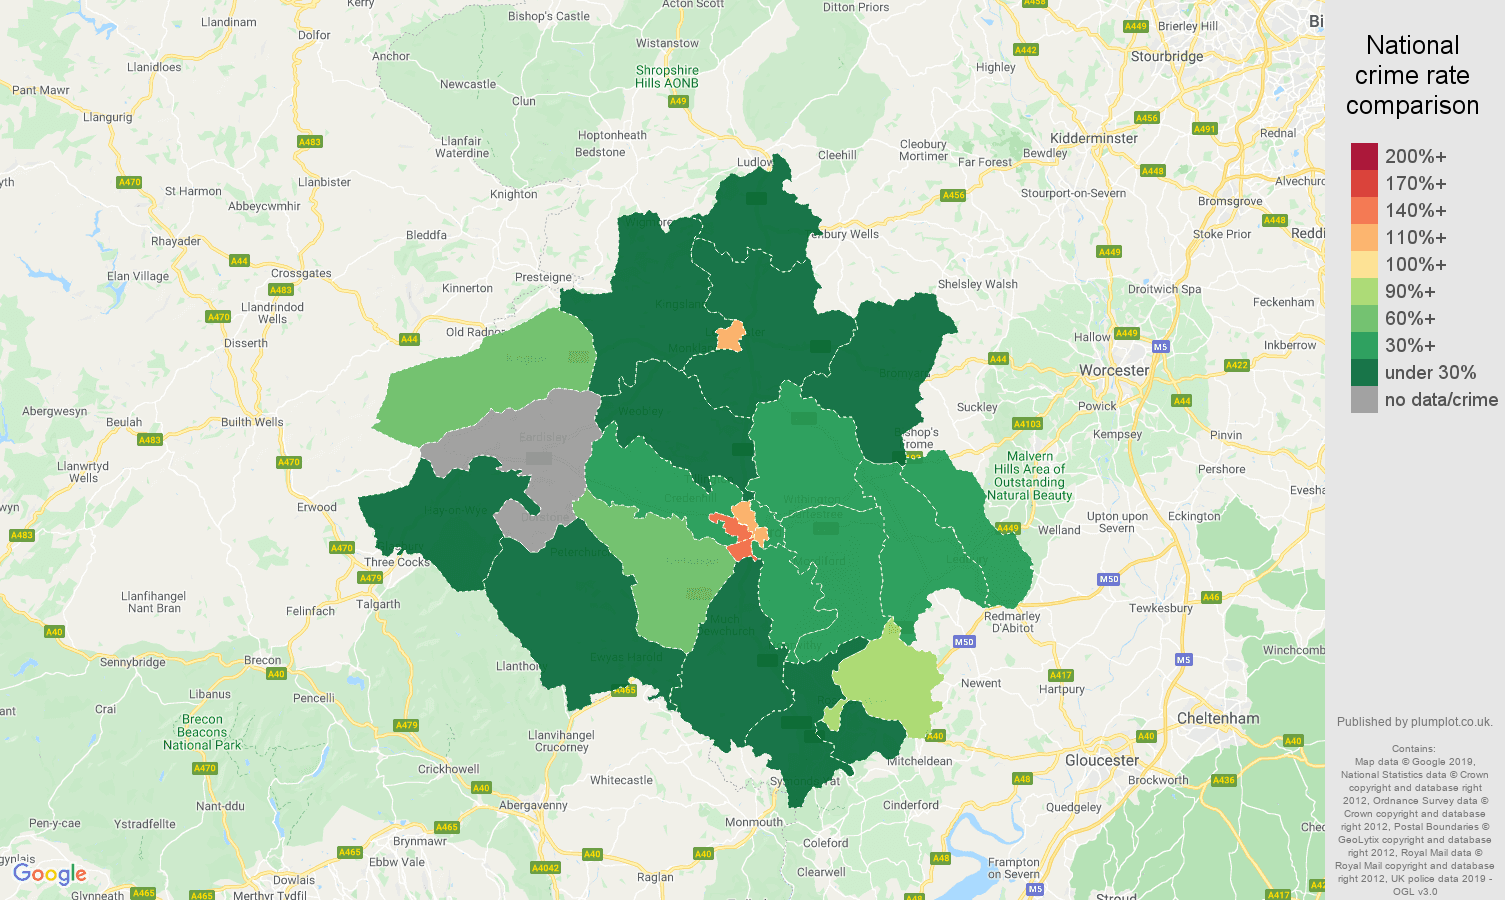 Herefordshire other crime rate comparison map